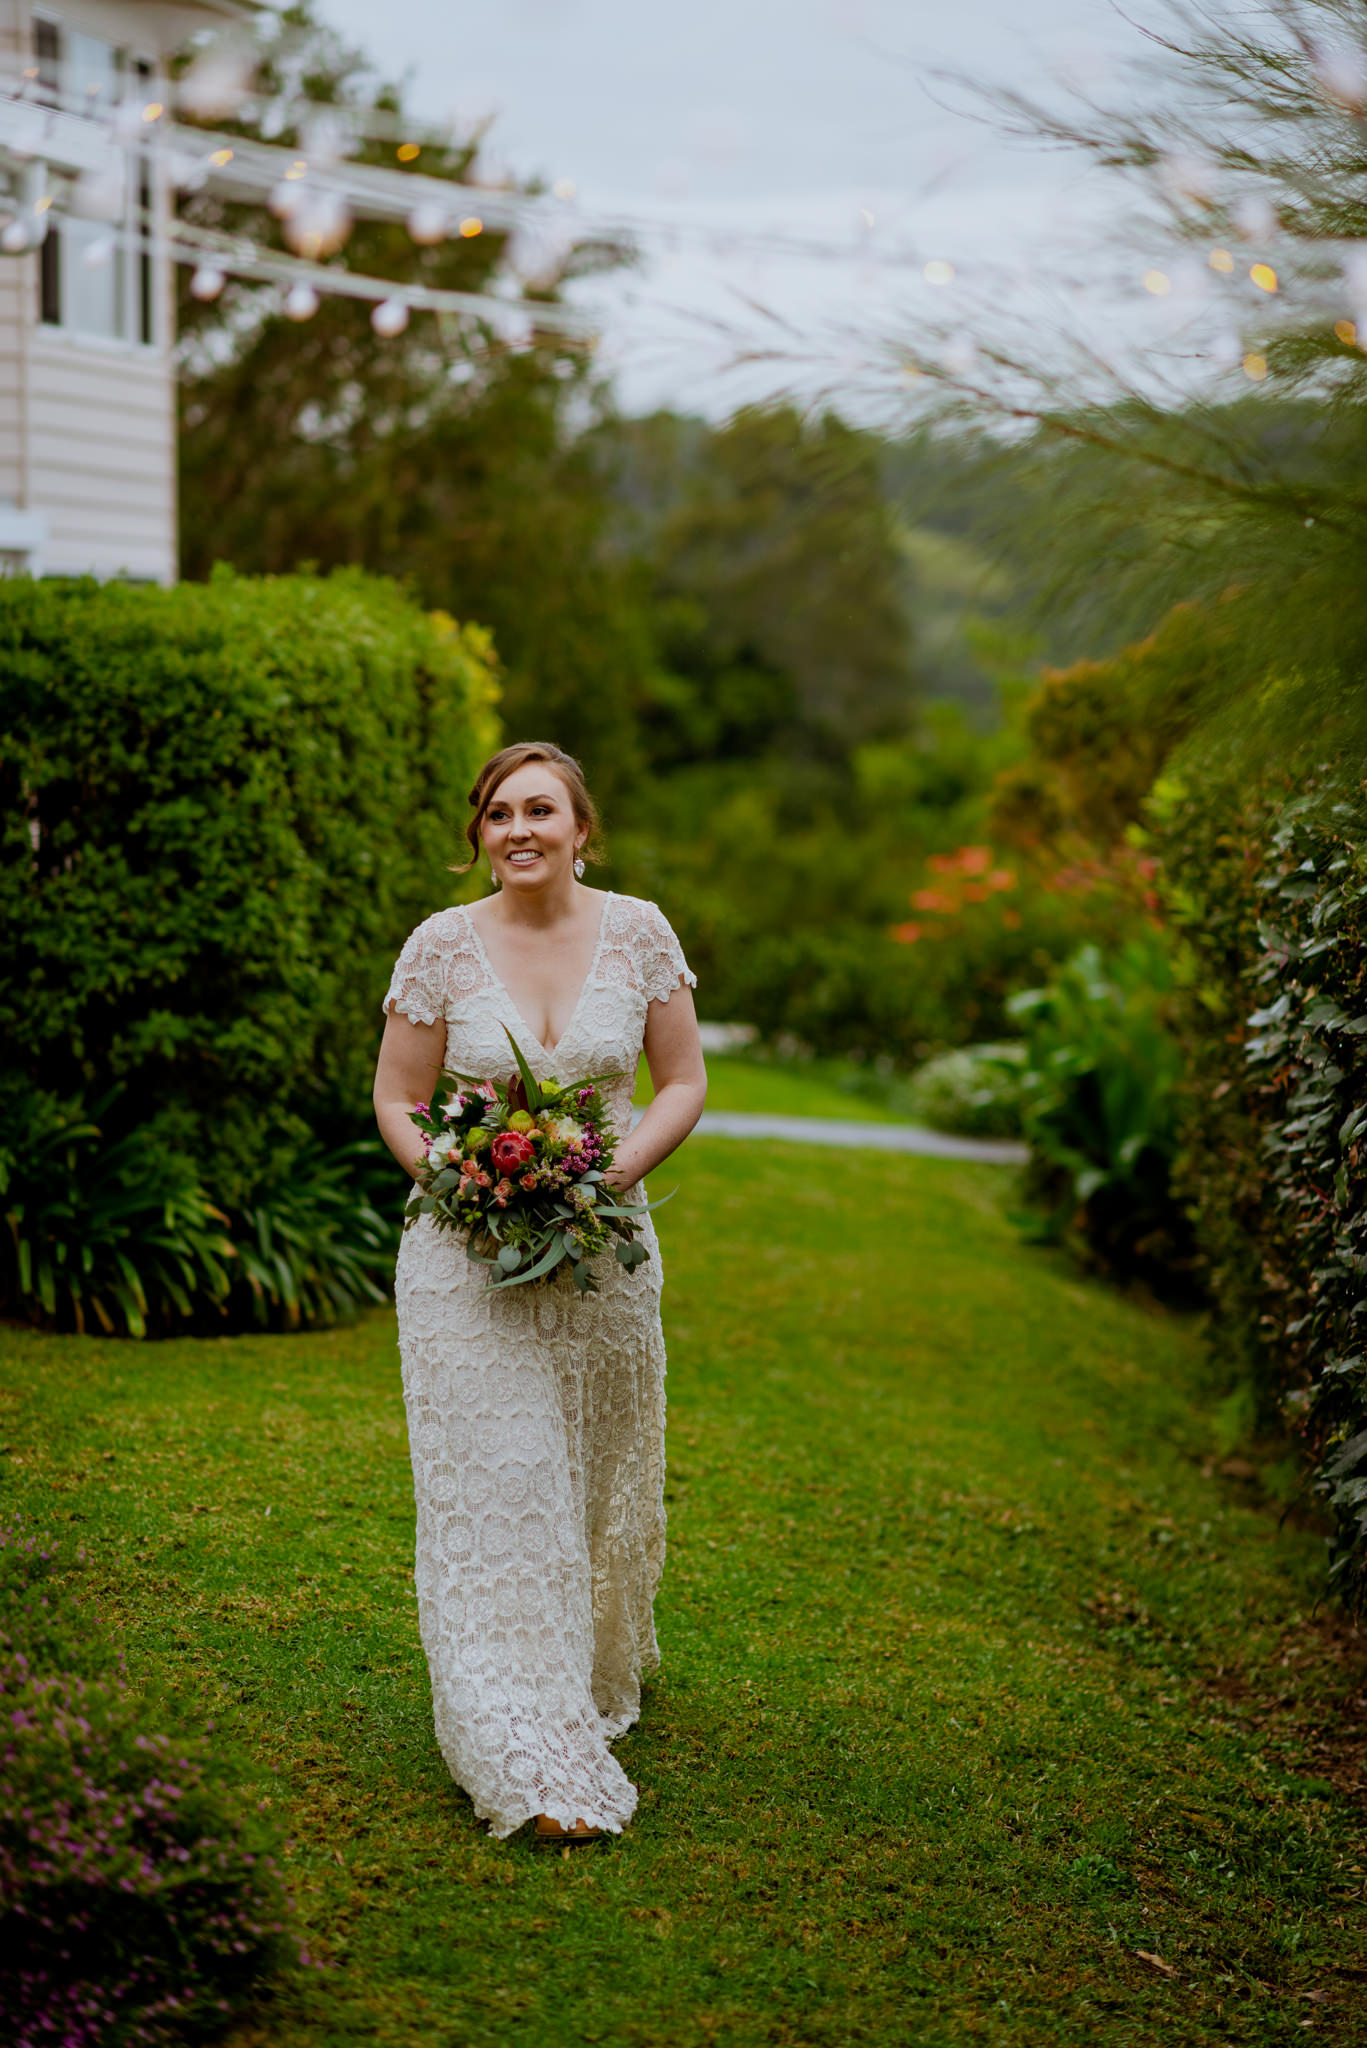 Bride smiles and walks on grass next to bushes